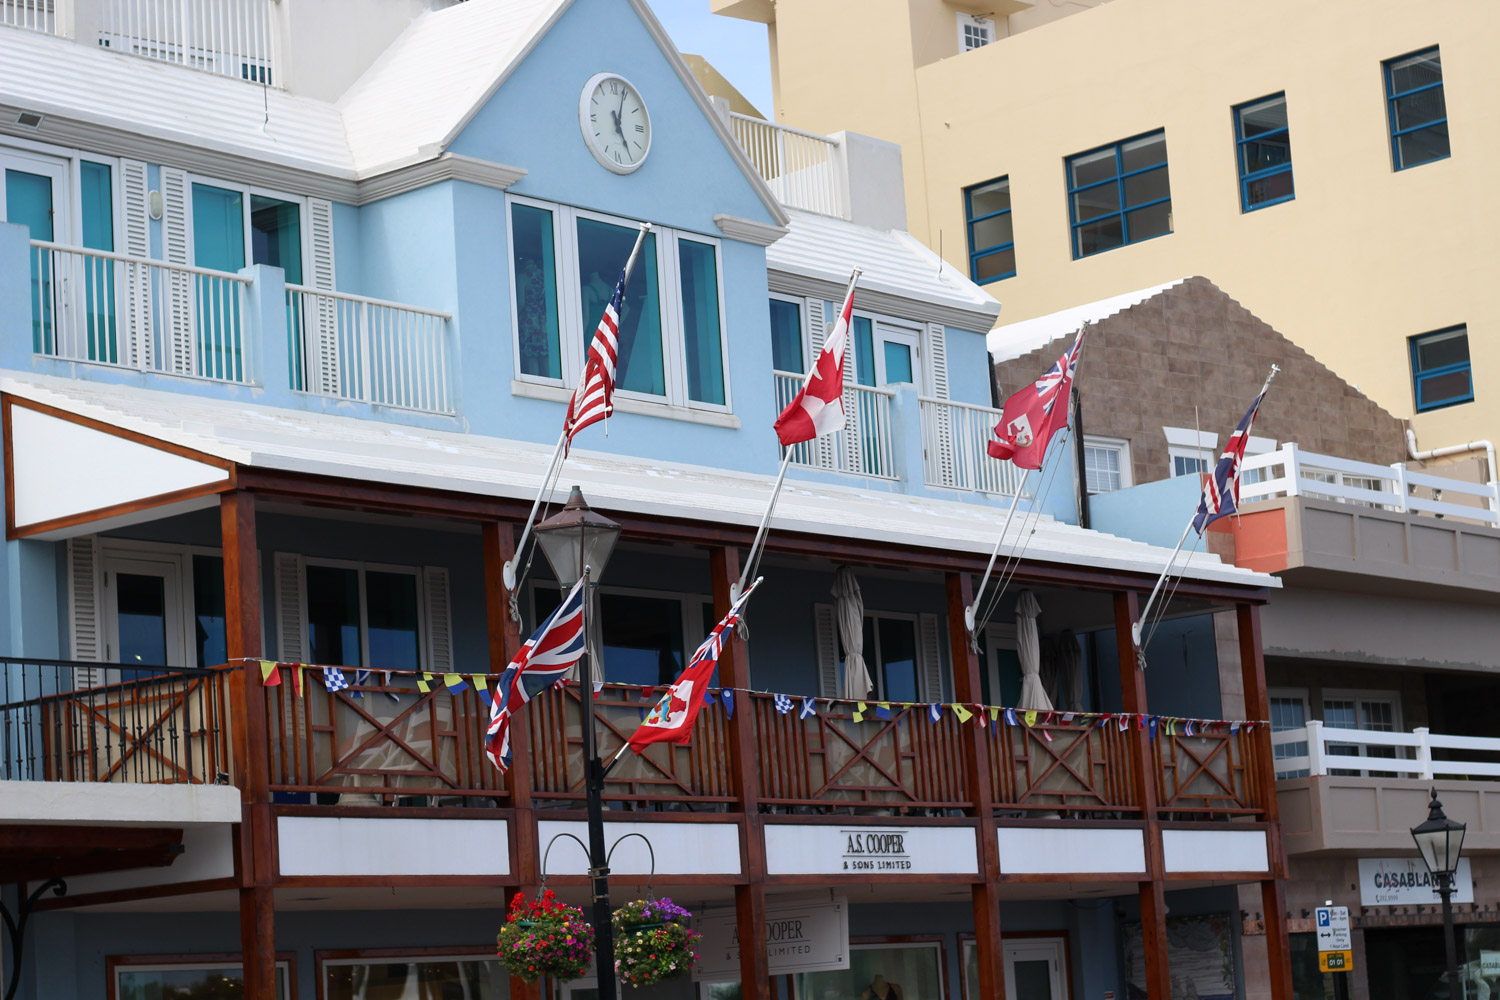 Bermuda travel guide featured by popular DC travel blogger, Monica Dutia